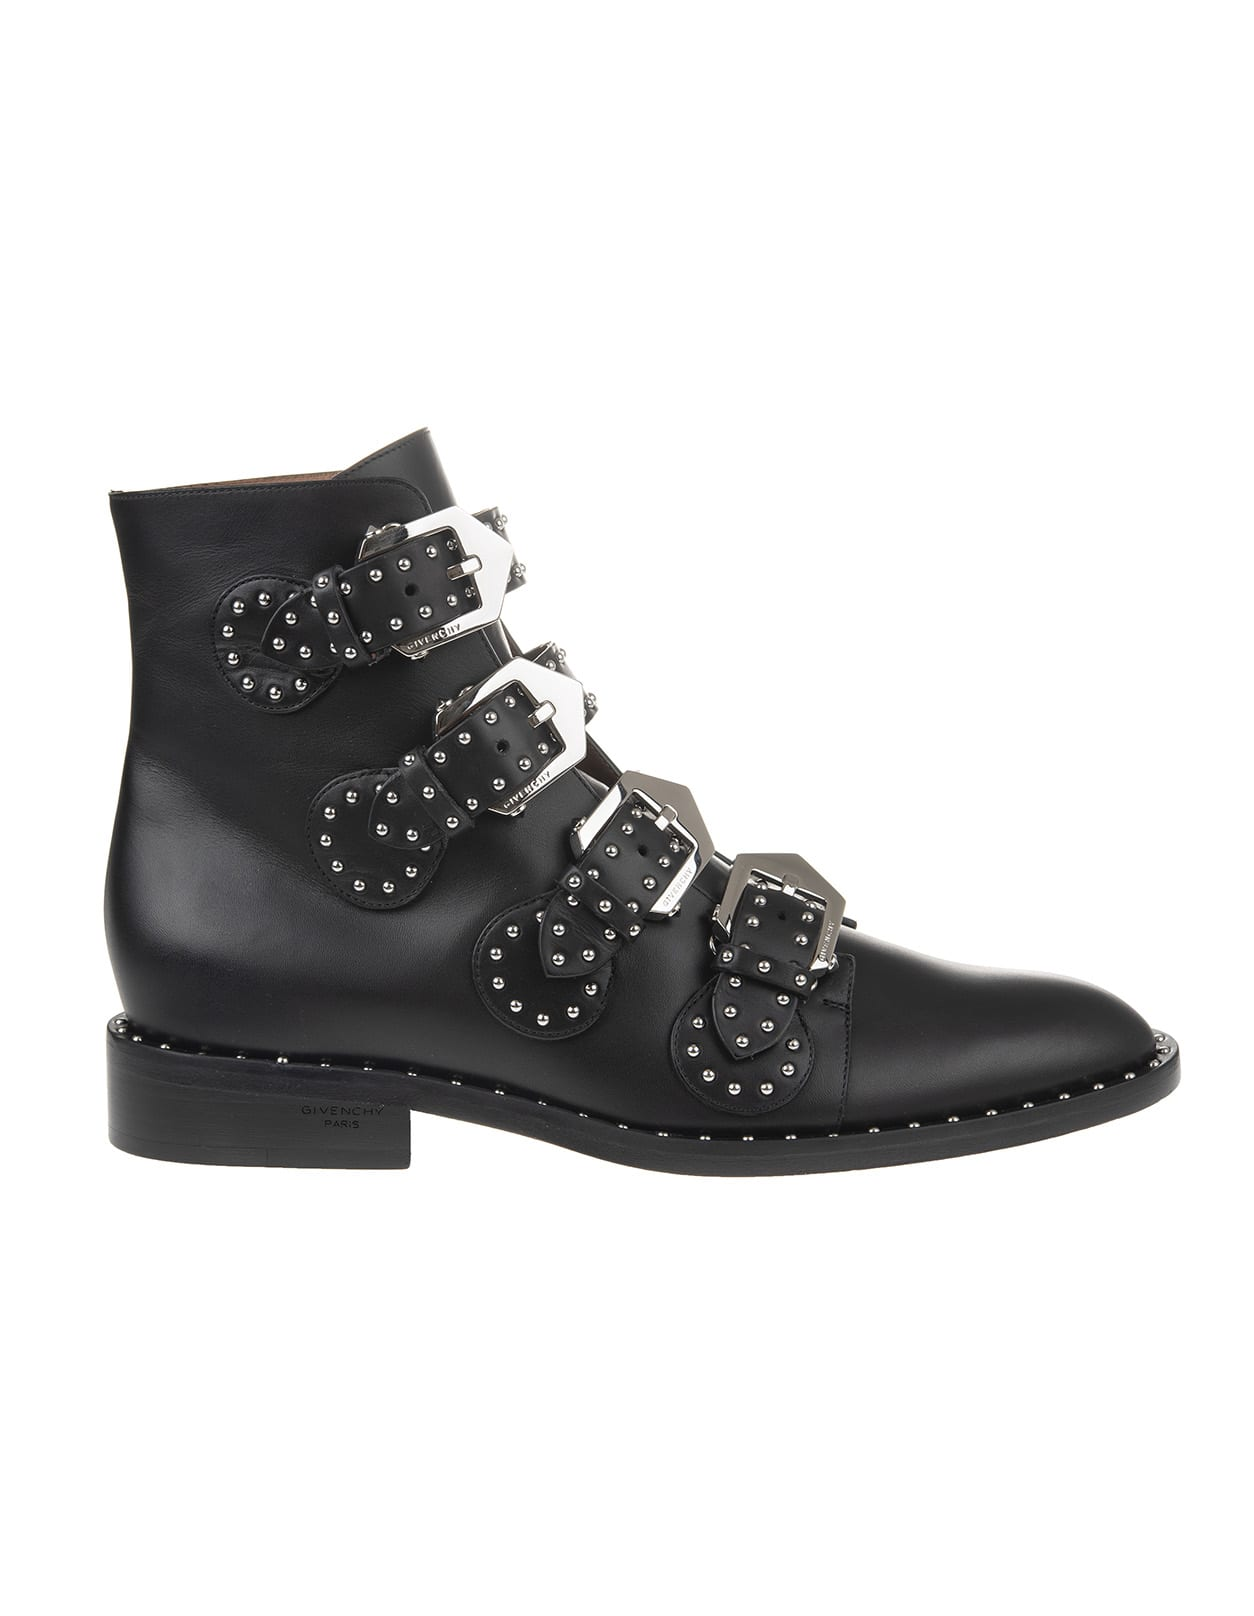 Buy Givenchy Black Woman Elegant Ankle Boot online, shop Givenchy shoes with free shipping